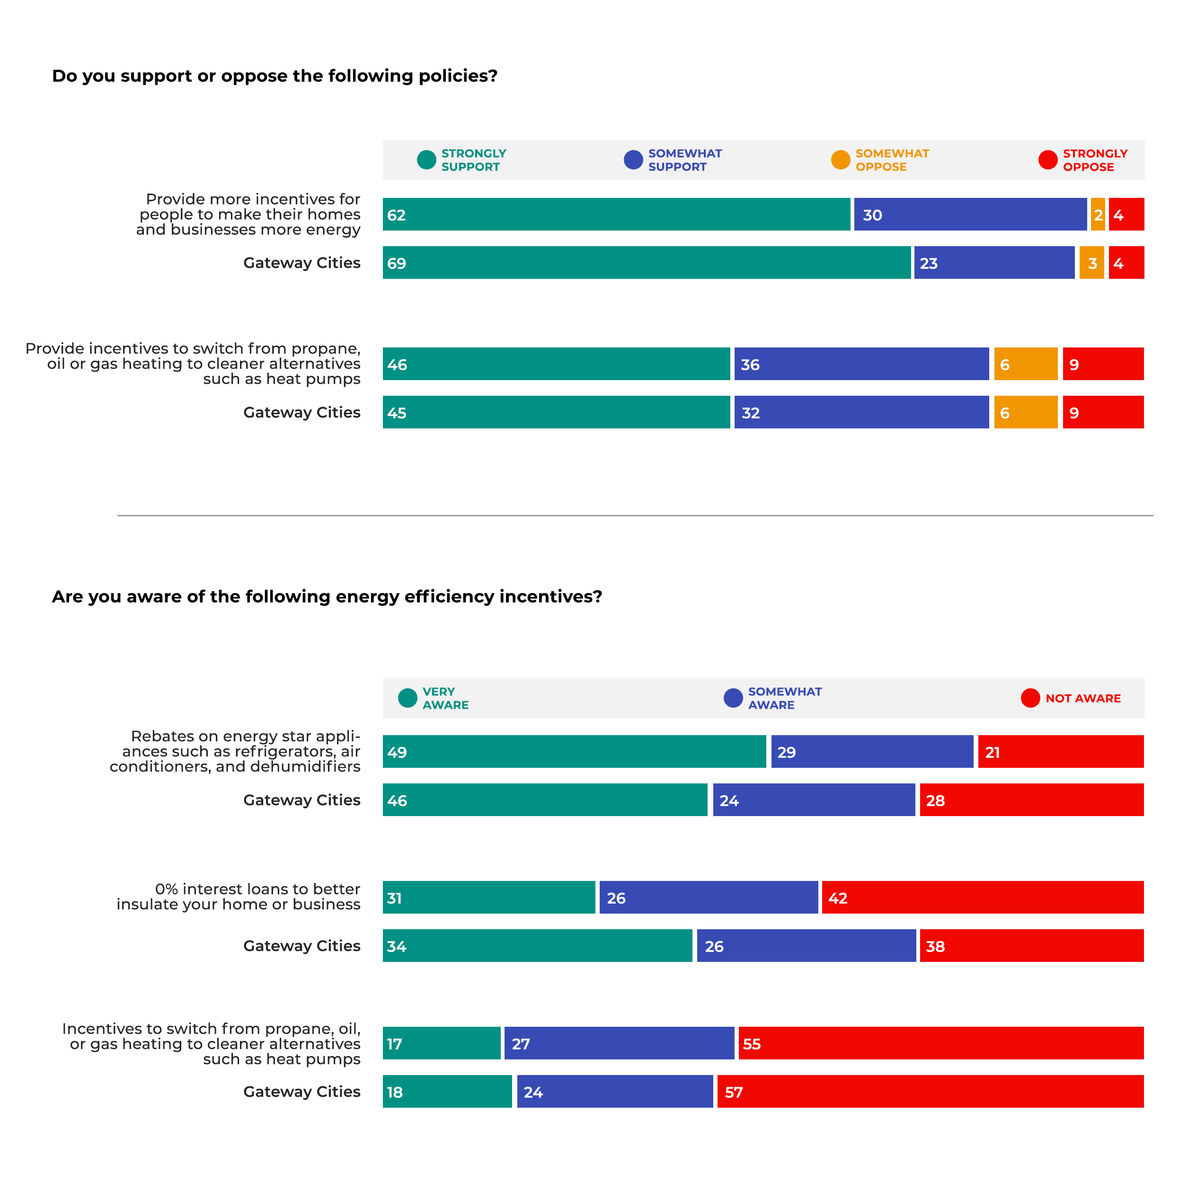 Bar graphs showing majorities of Massachusetts voters support providing incentives for people to make their homes and businesses more efficient (92%), and incentives for people to switch from propane, oil, and gas to cleaner alternatives (82%).